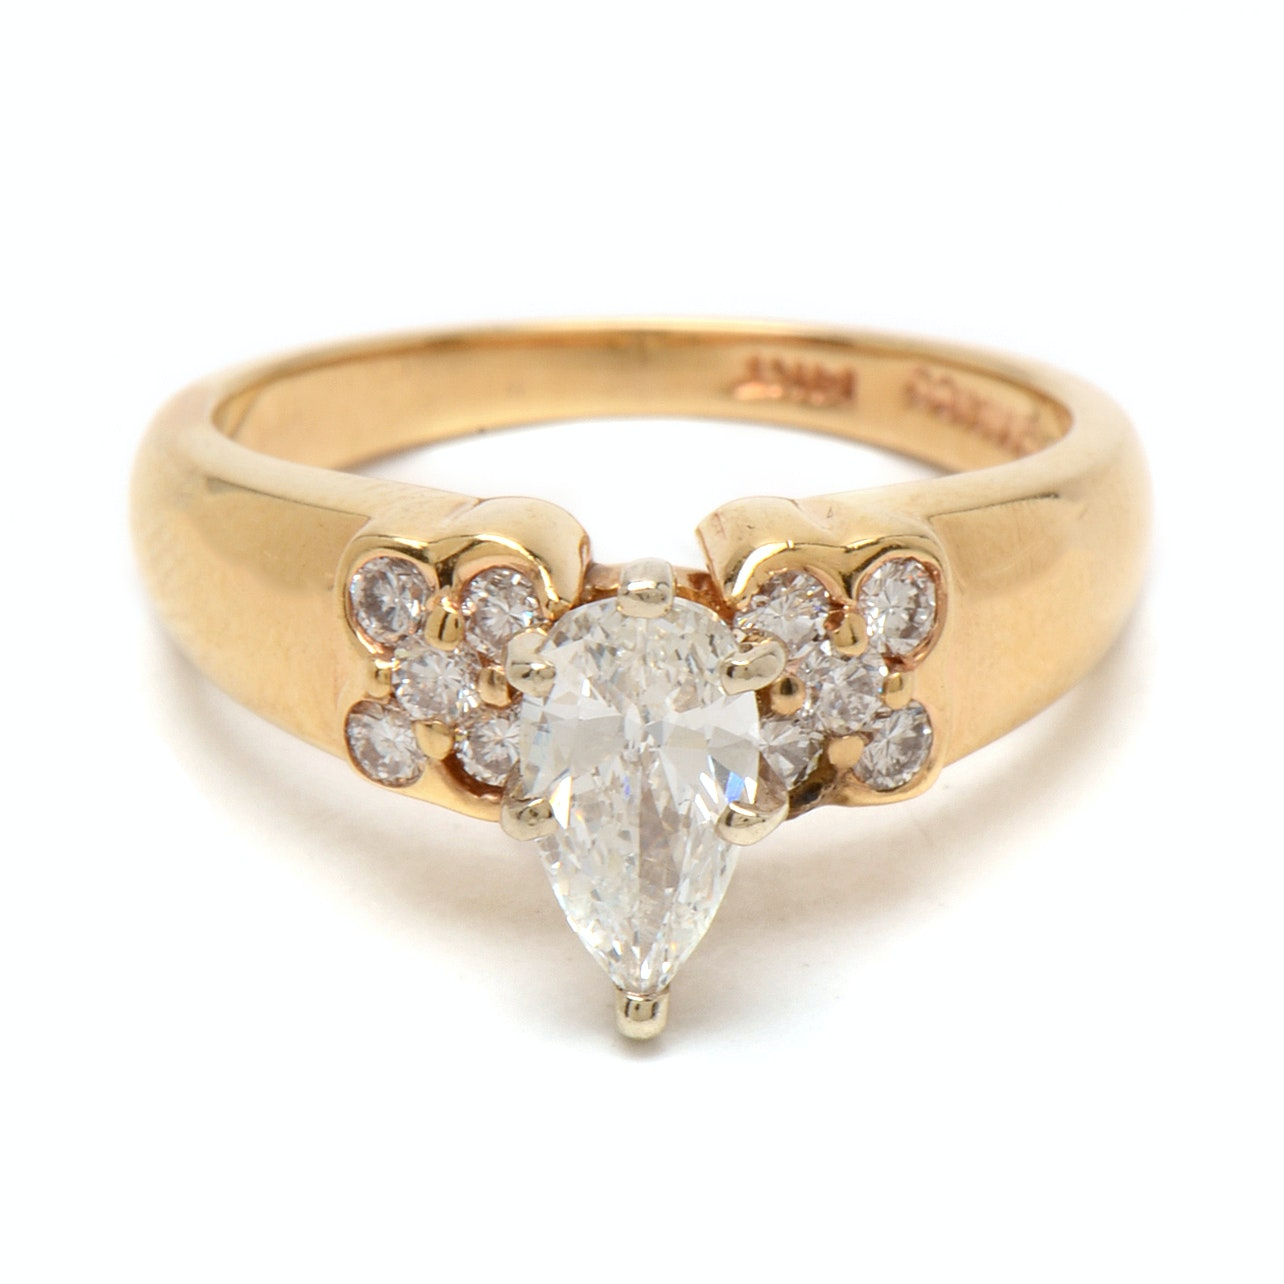 14K Yellow Gold Pear-Cut Diamond Engagement Ring